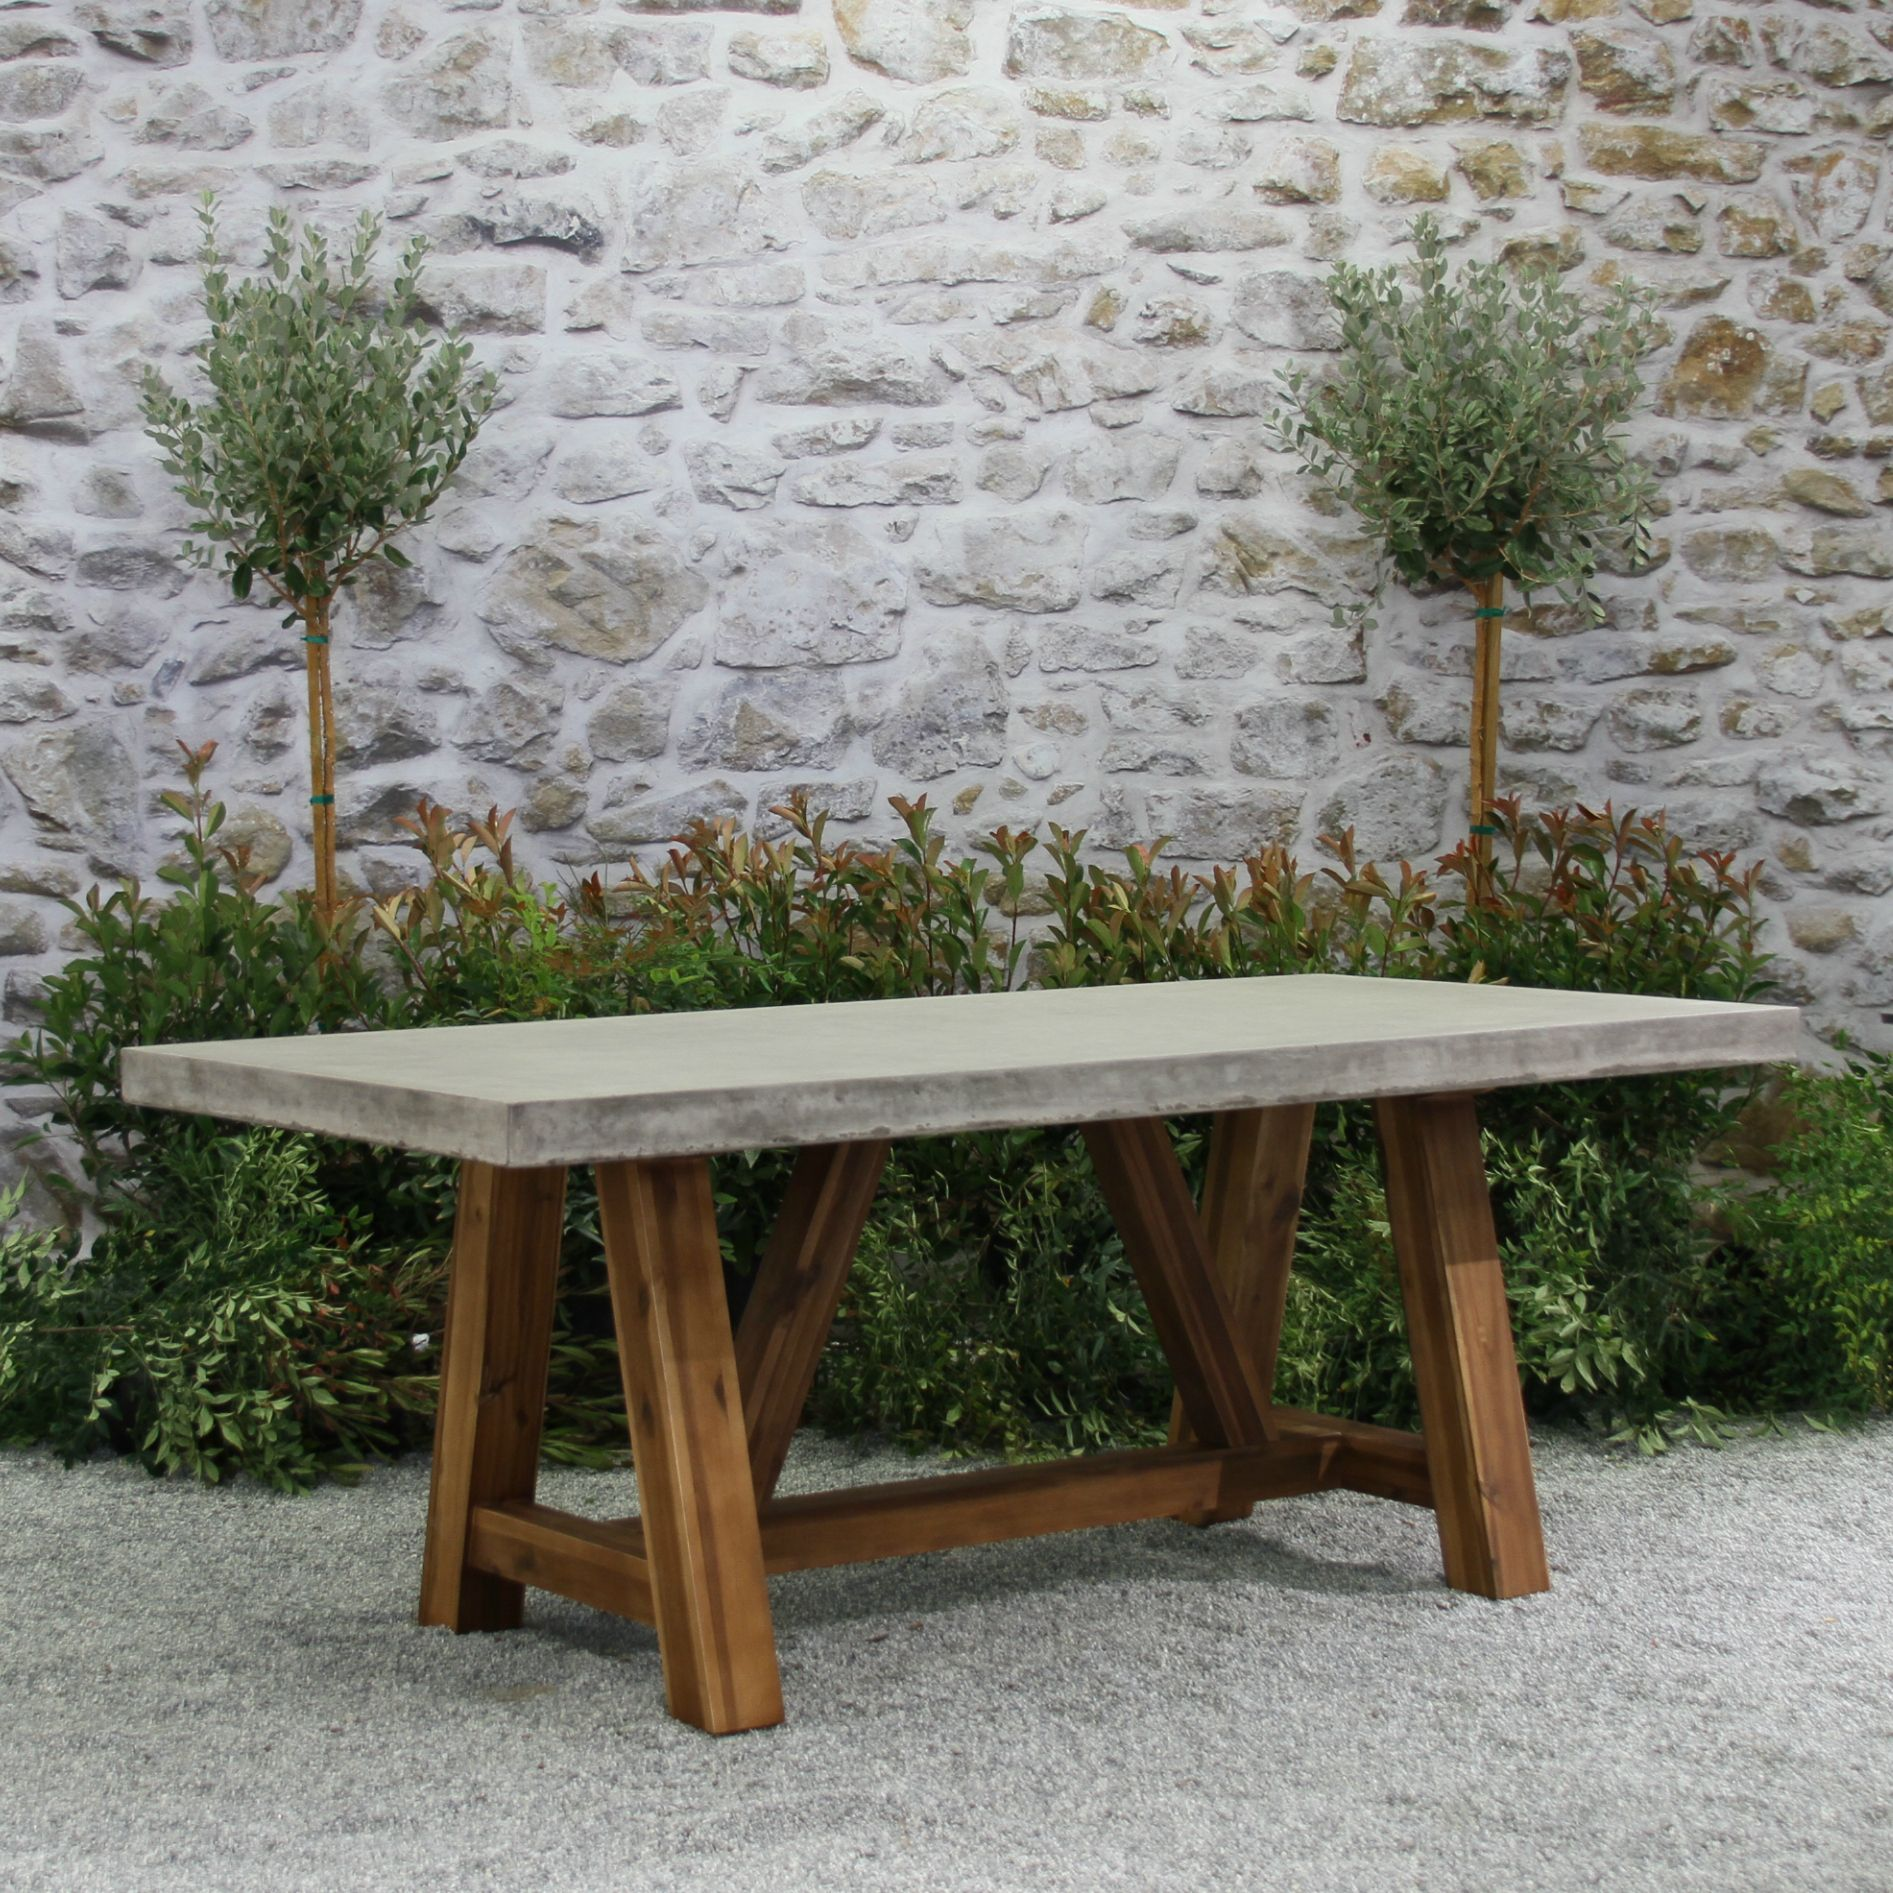 Outdoor tables on sale now An outdoor table from our teak outdoor furniture